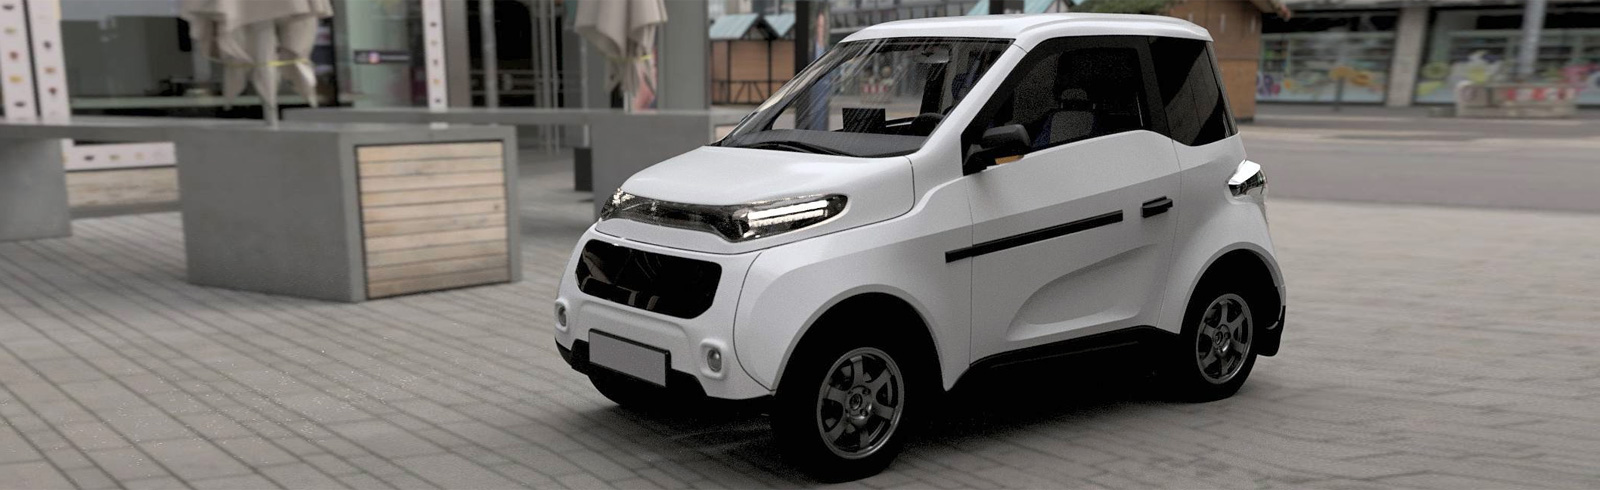 Russian's Zetta all-electric city car will cost EUR 6,999 / USD 7,517 in its base versions